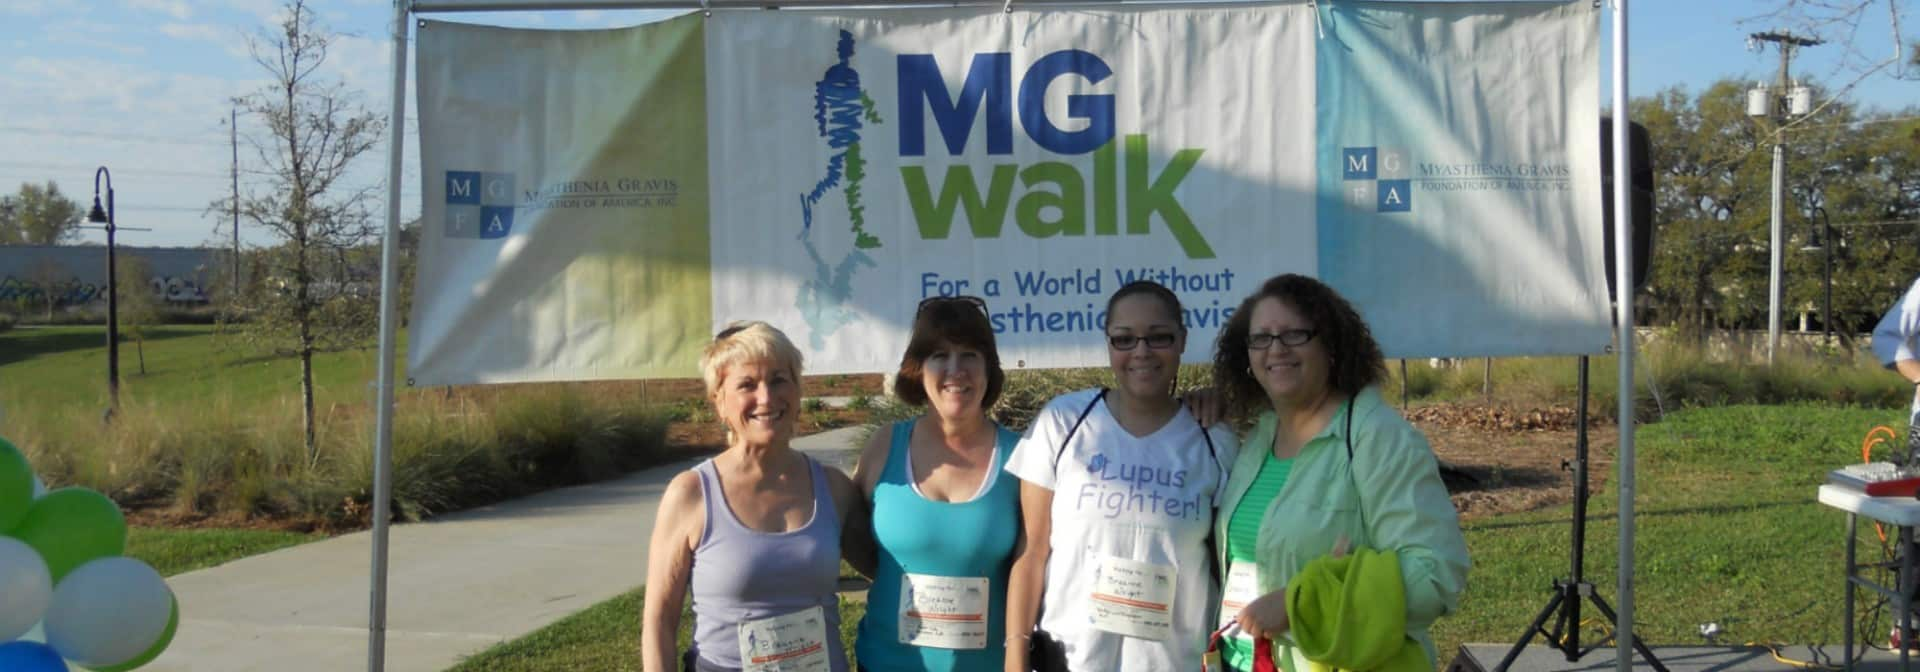 Tallahassee MG Walk